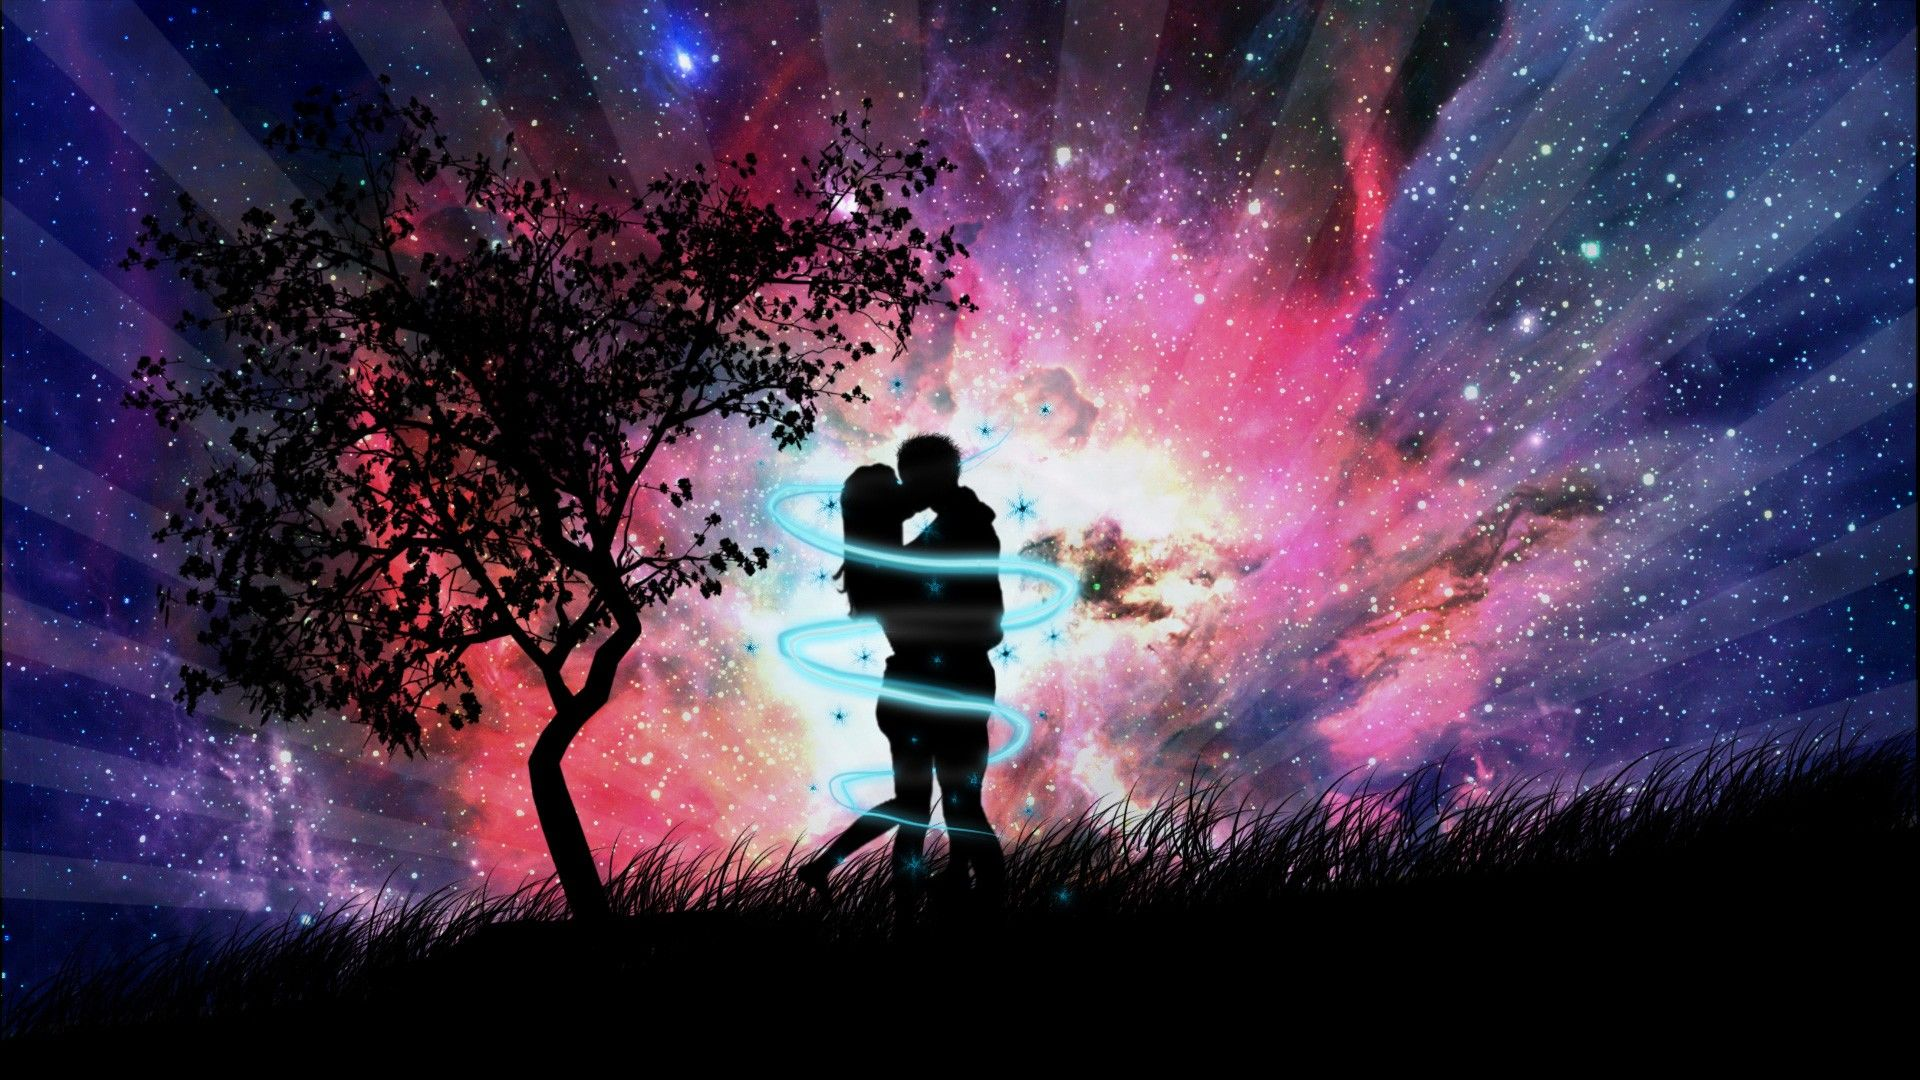 Background image css trackid sp 006 - Love Background D Wallpapers Occasions Of The Heart